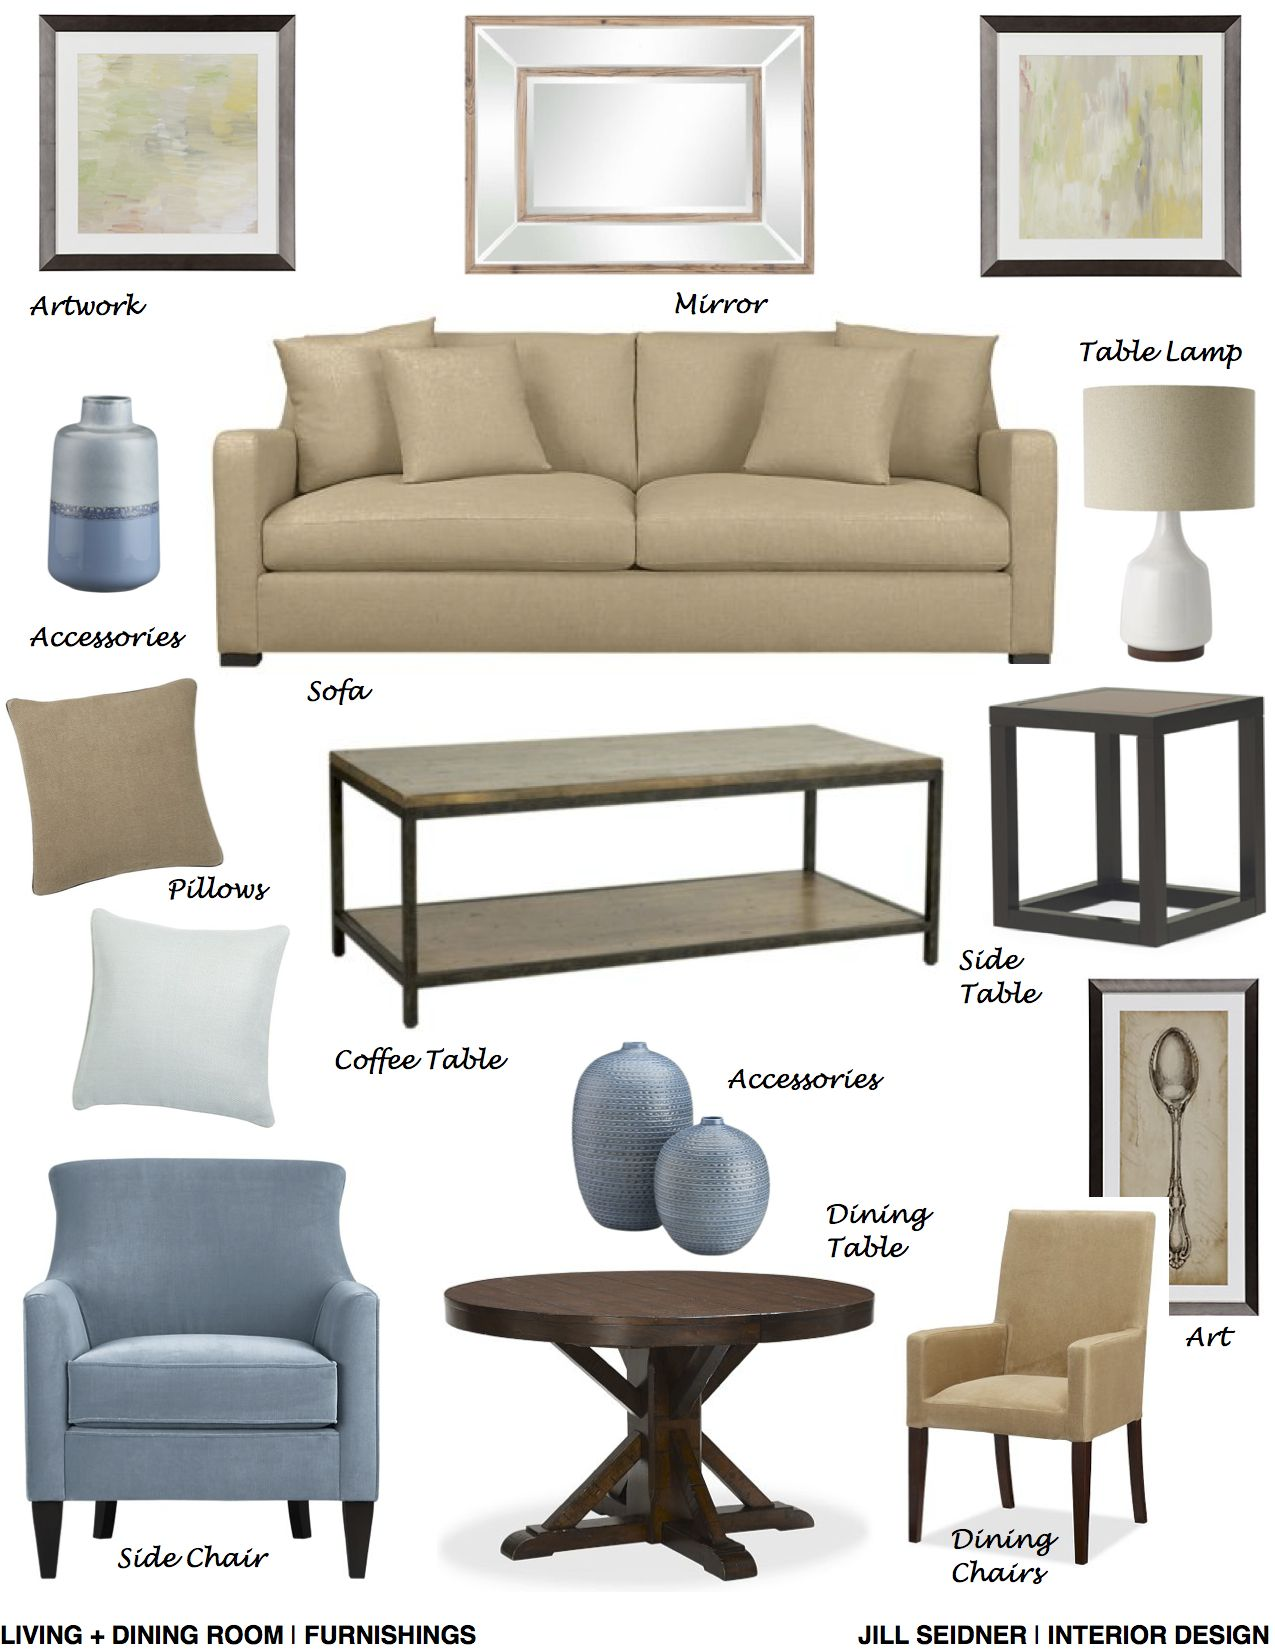 Silver Spring, MD Online Design Project Living + Dining Room Furnishings  Concept Board